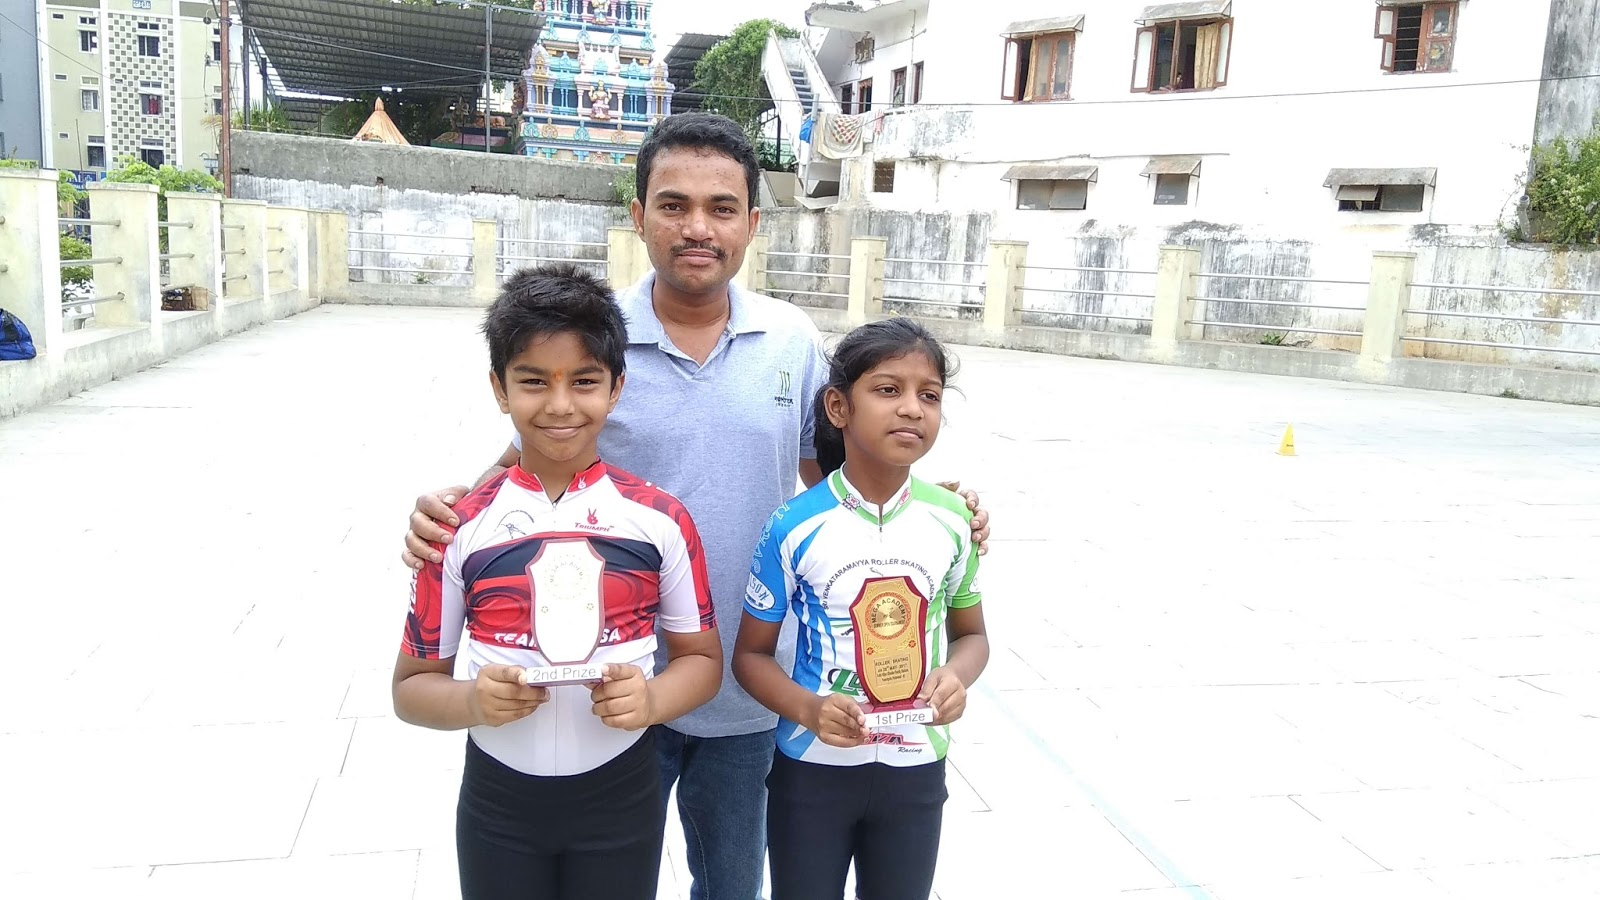 Roller shoes in hyderabad - Skating Medal Winners Hyderabad